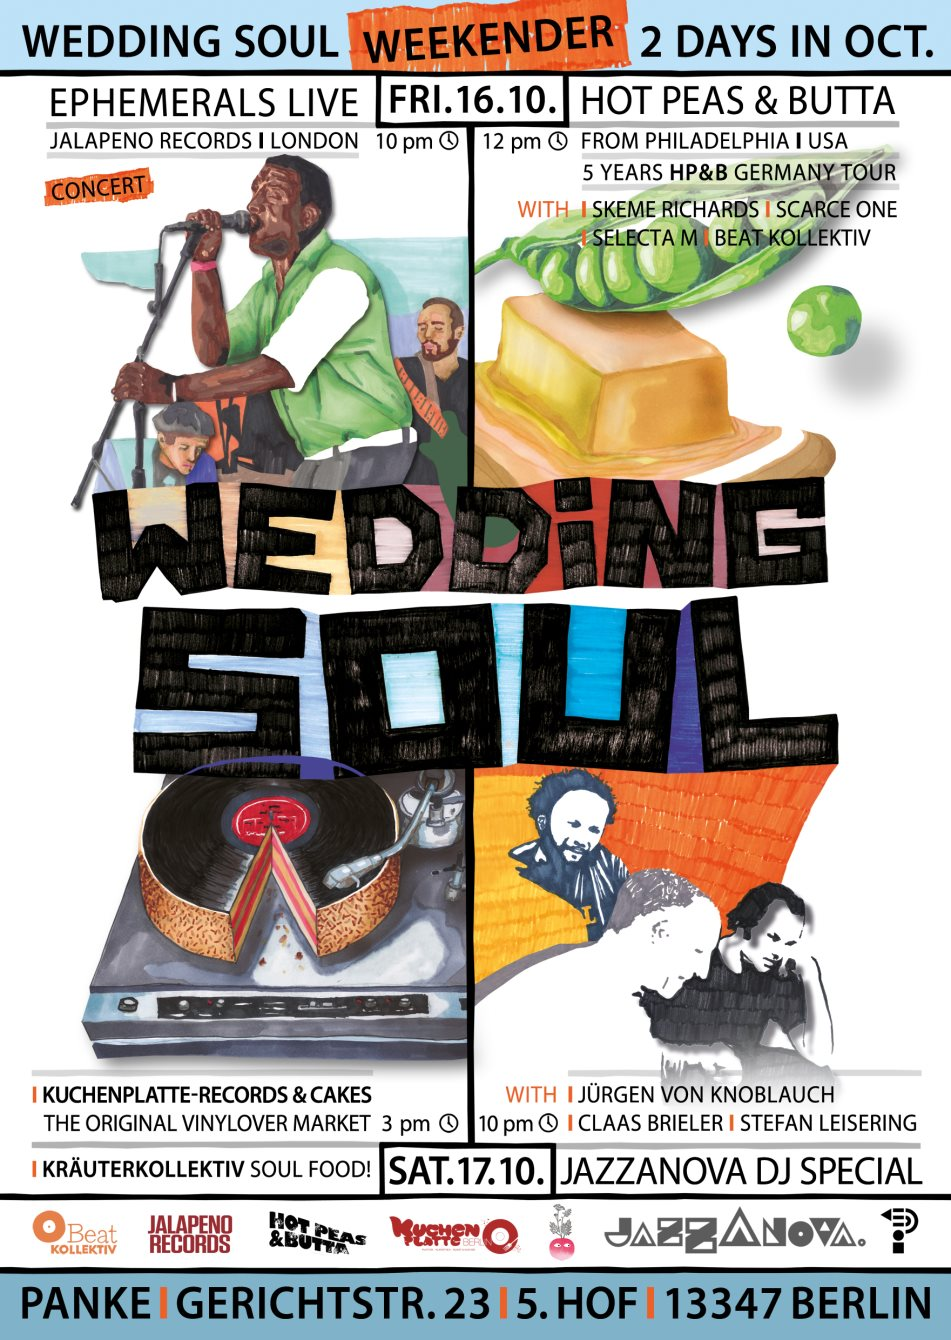 Wedding Soul Weekender with Jazzanova, Ephemerals, Hot Peas & Butta and Kuchenplatte